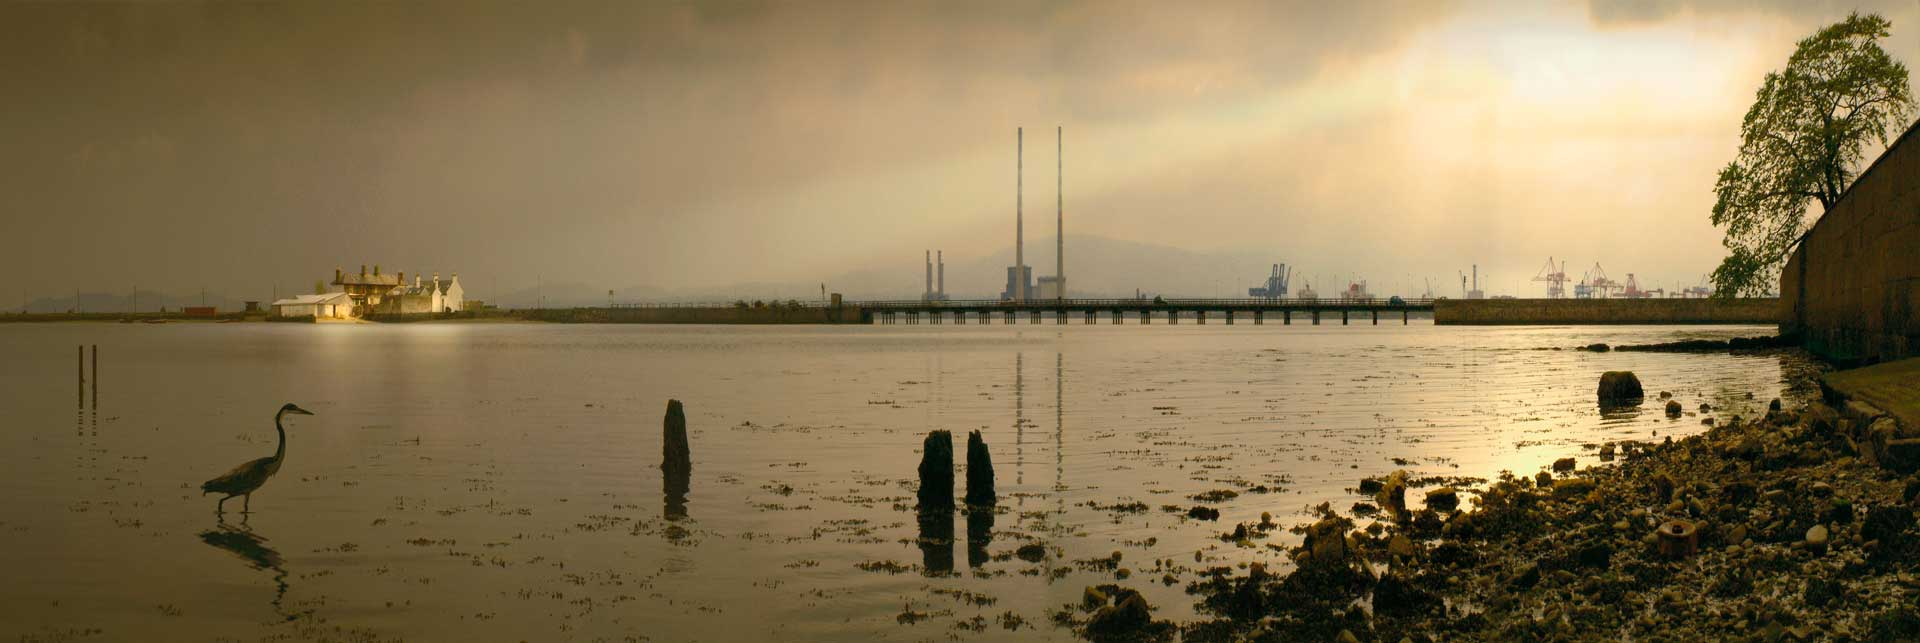 5th Port Dollymount Bull Island Calendar 2021